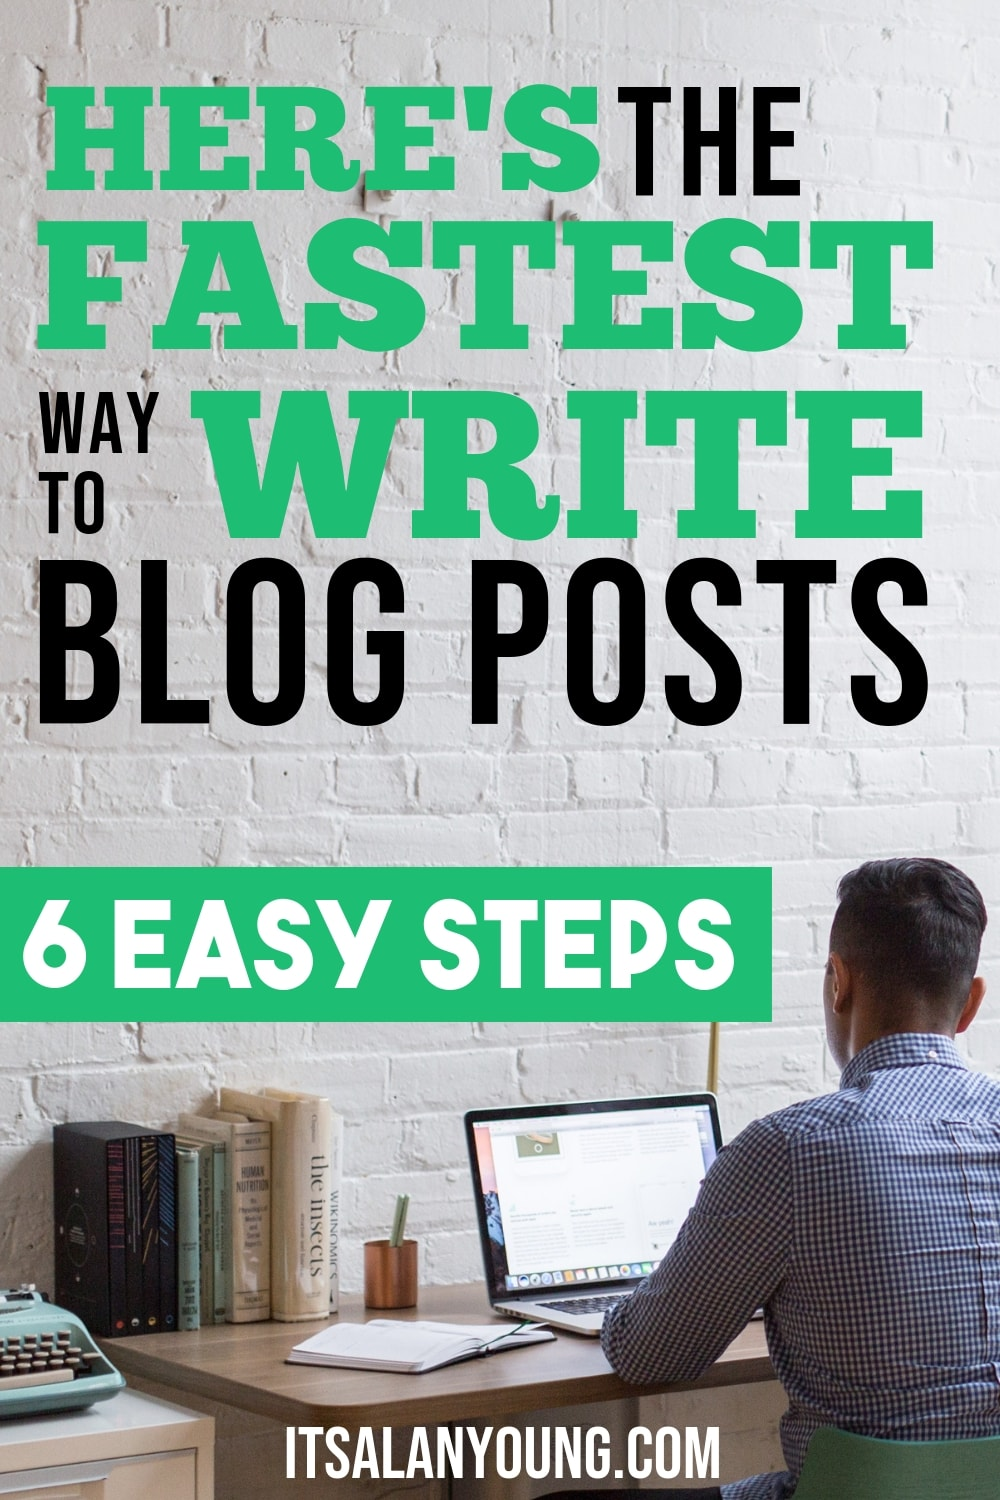 Want to write blogs post quicker than ever? Then these 6 simple steps will help you create articles faster than you thought possible. Will you be able to do step 3 even though it\'s super easy? Find out how. #ItsAlanYoung #Blogging #bloggingtips #Blog #Writing #writingtips